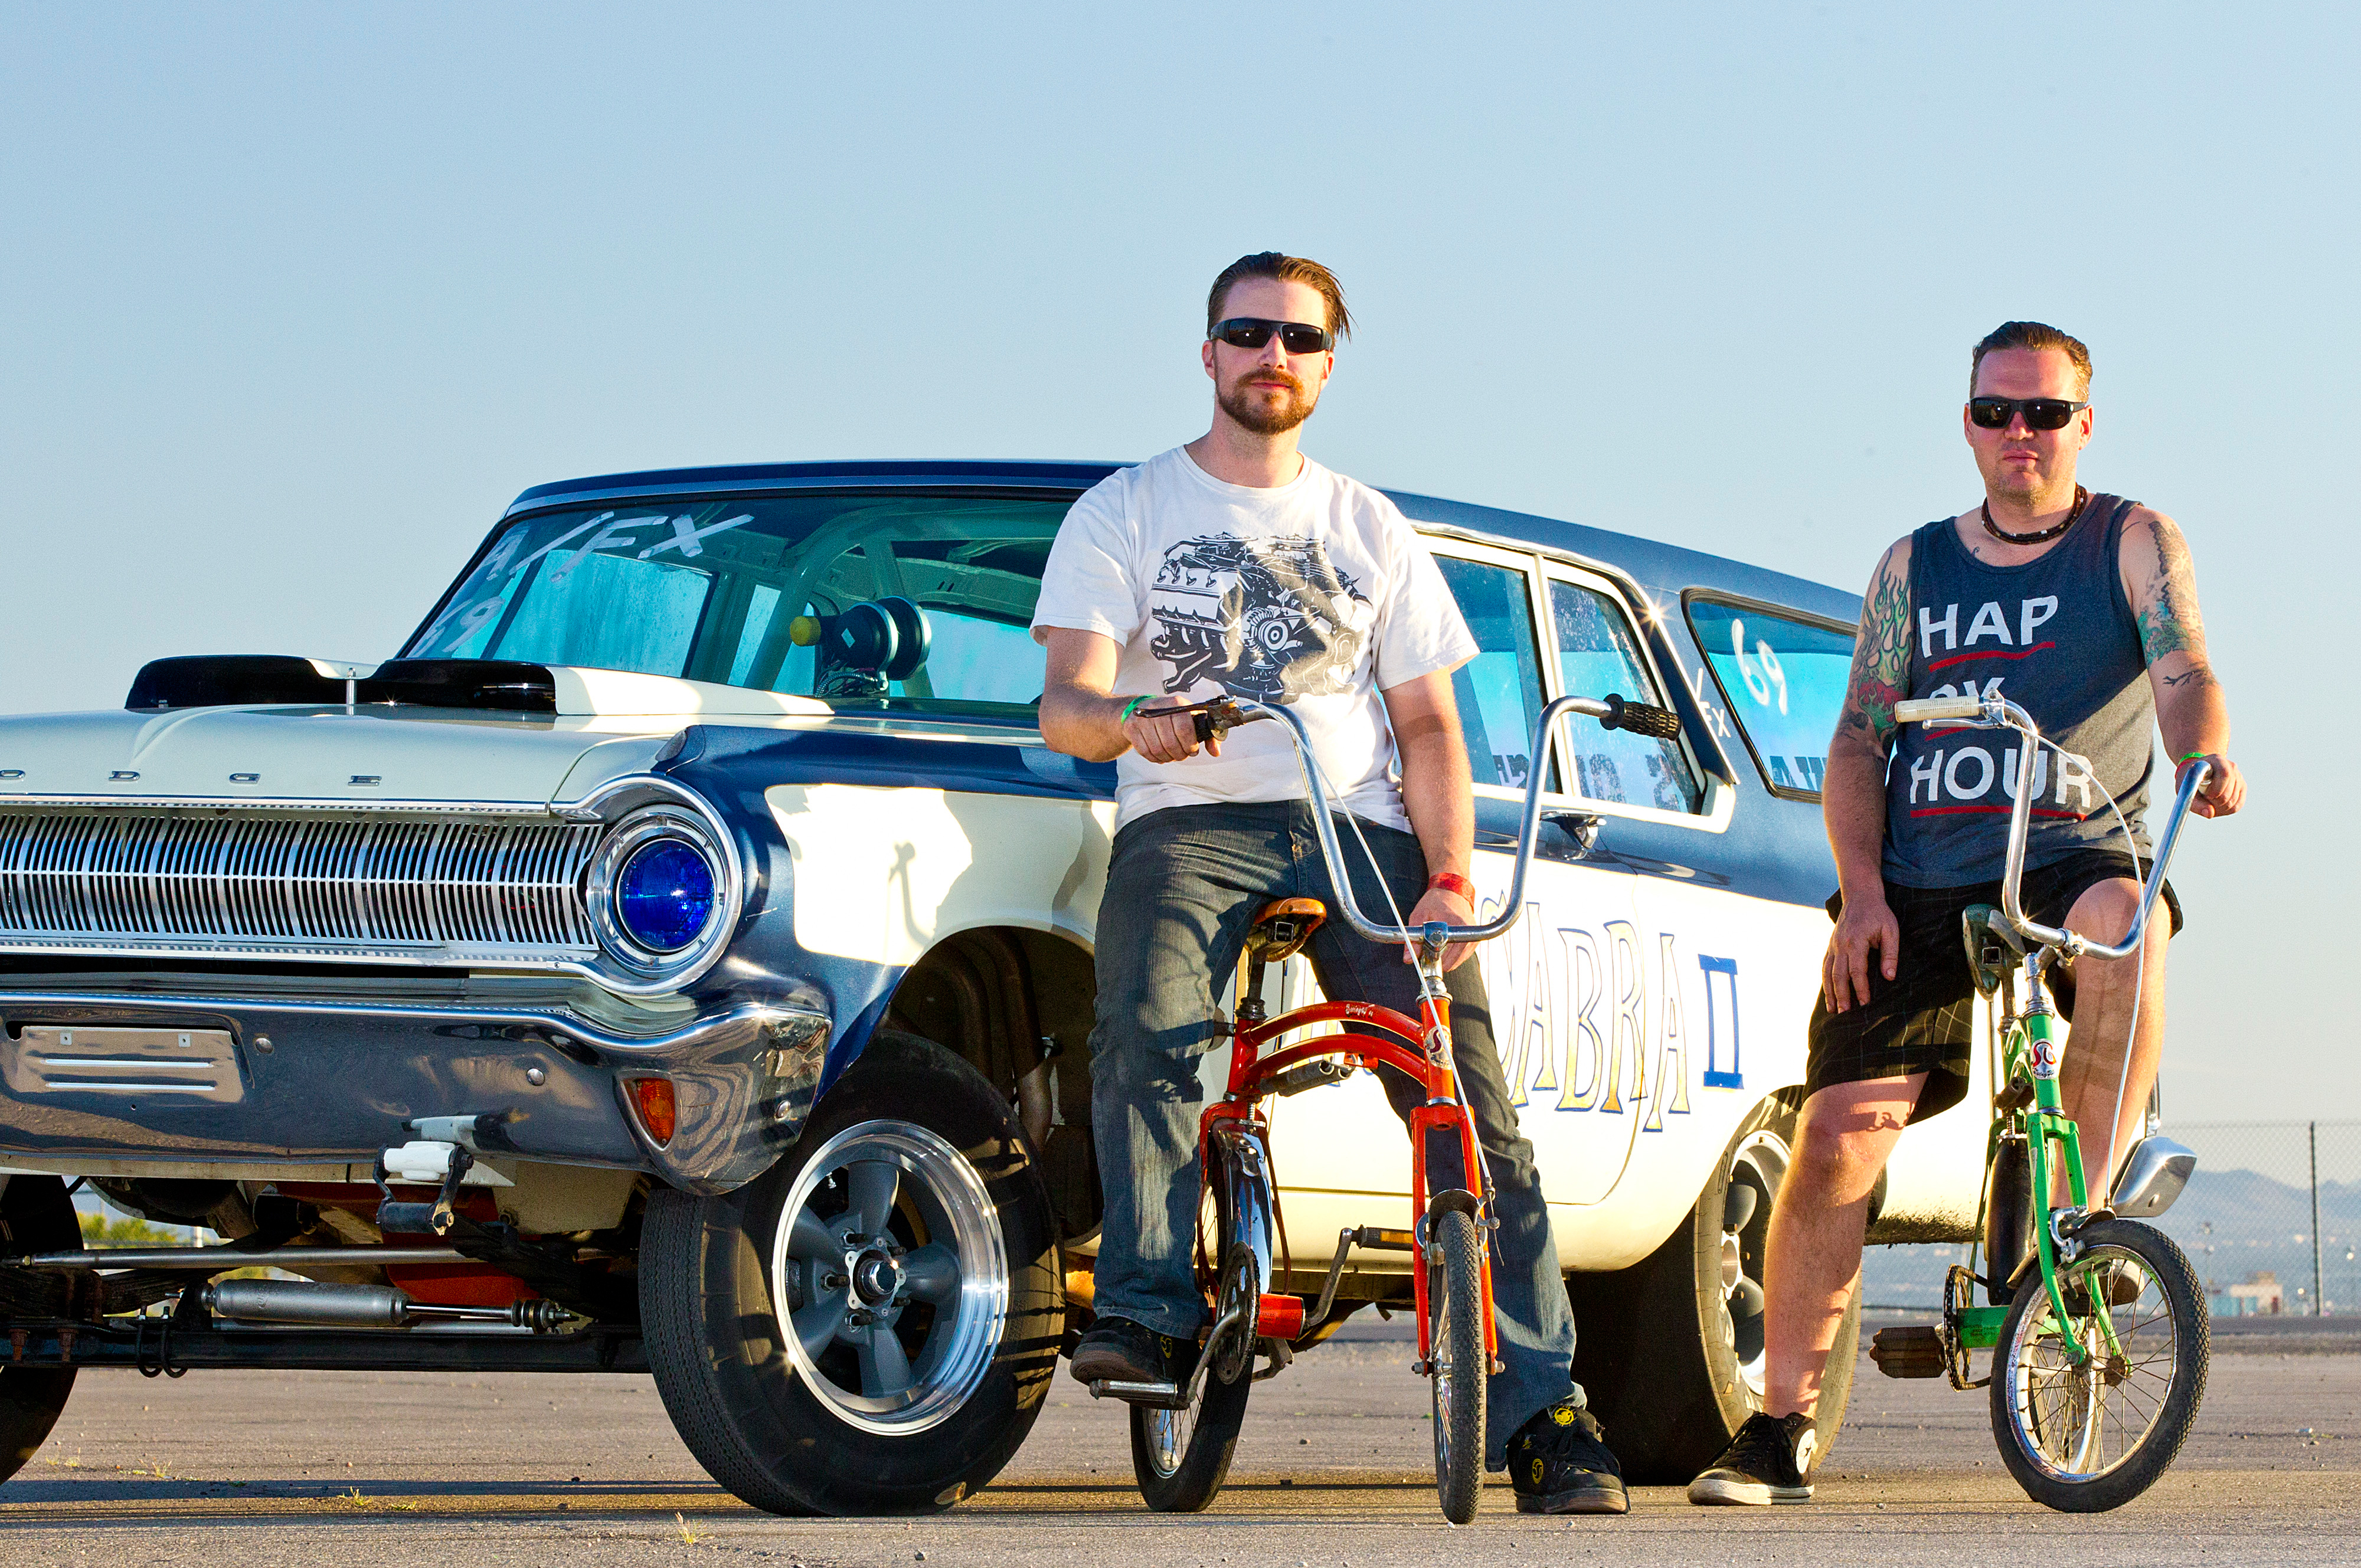 In their 30s, Chris Carlson (left) and Pat McInnis are proof that Dodge's visually striking traction trickery appeals to youngsters and oldsters alike. They're part of the new generation of Match Bash altered wheelbase builders.